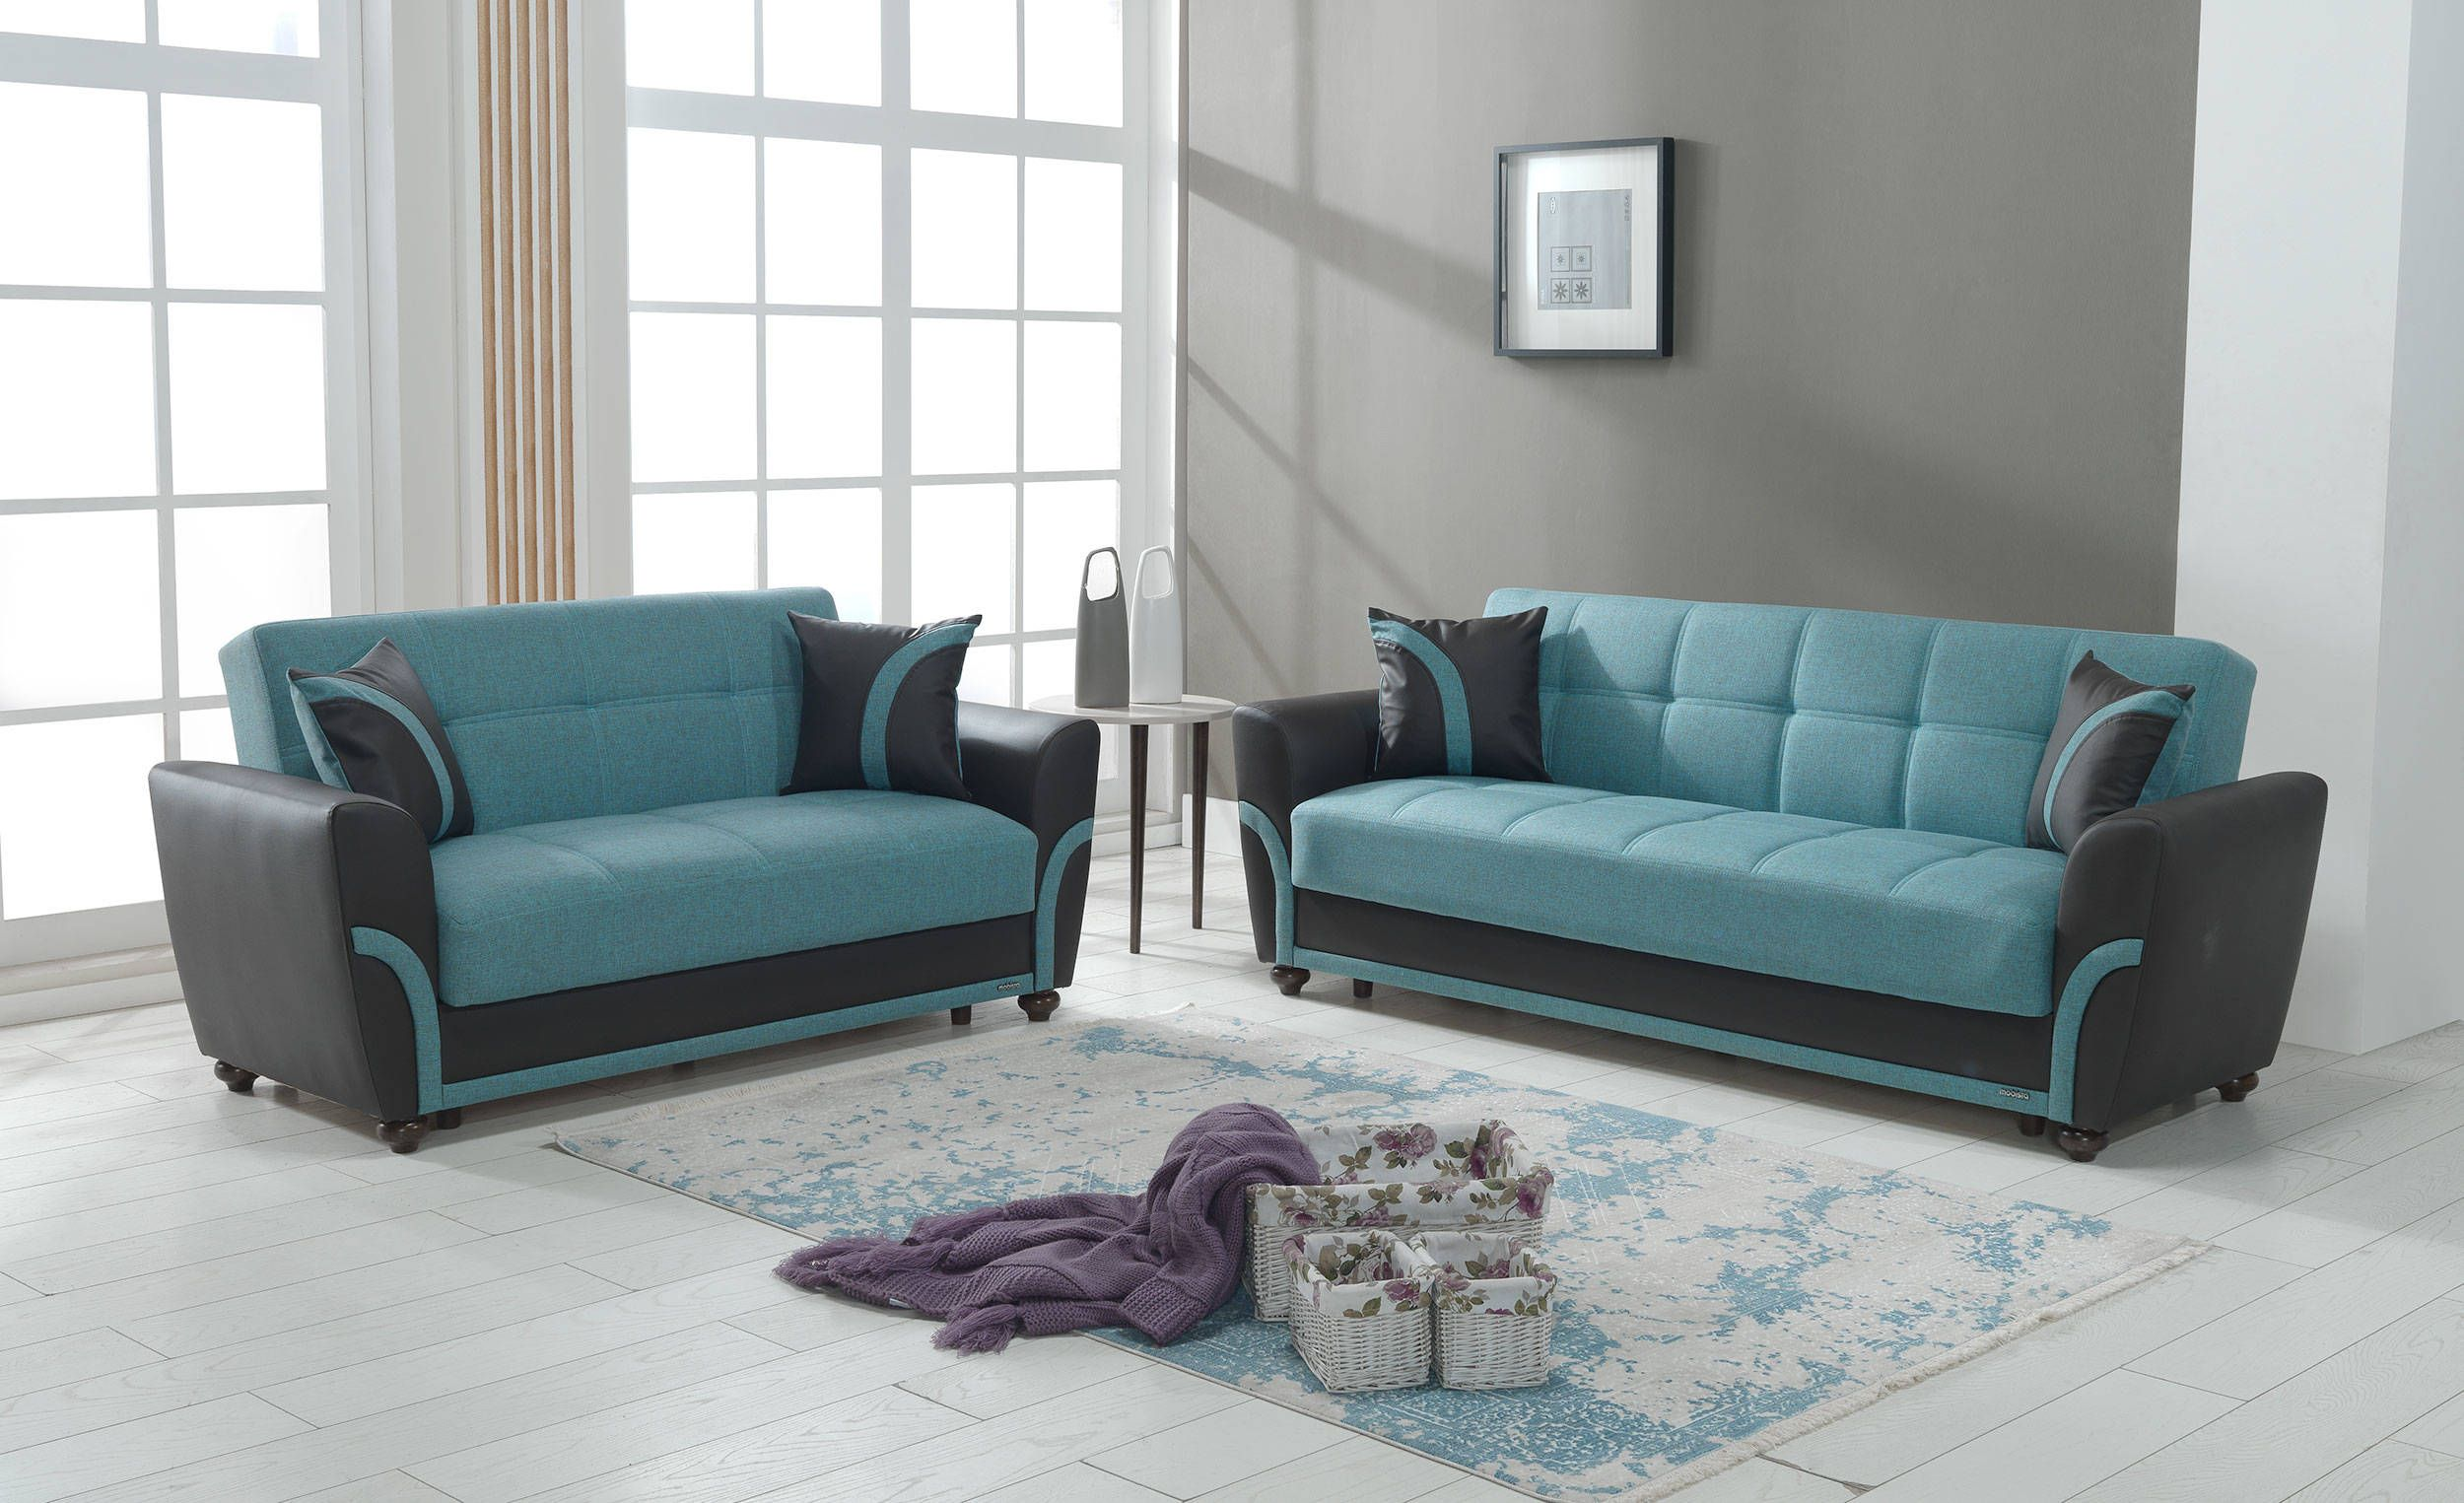 Star City Turquoise Fabric PU MDF Plywood 2pc Living Room Set